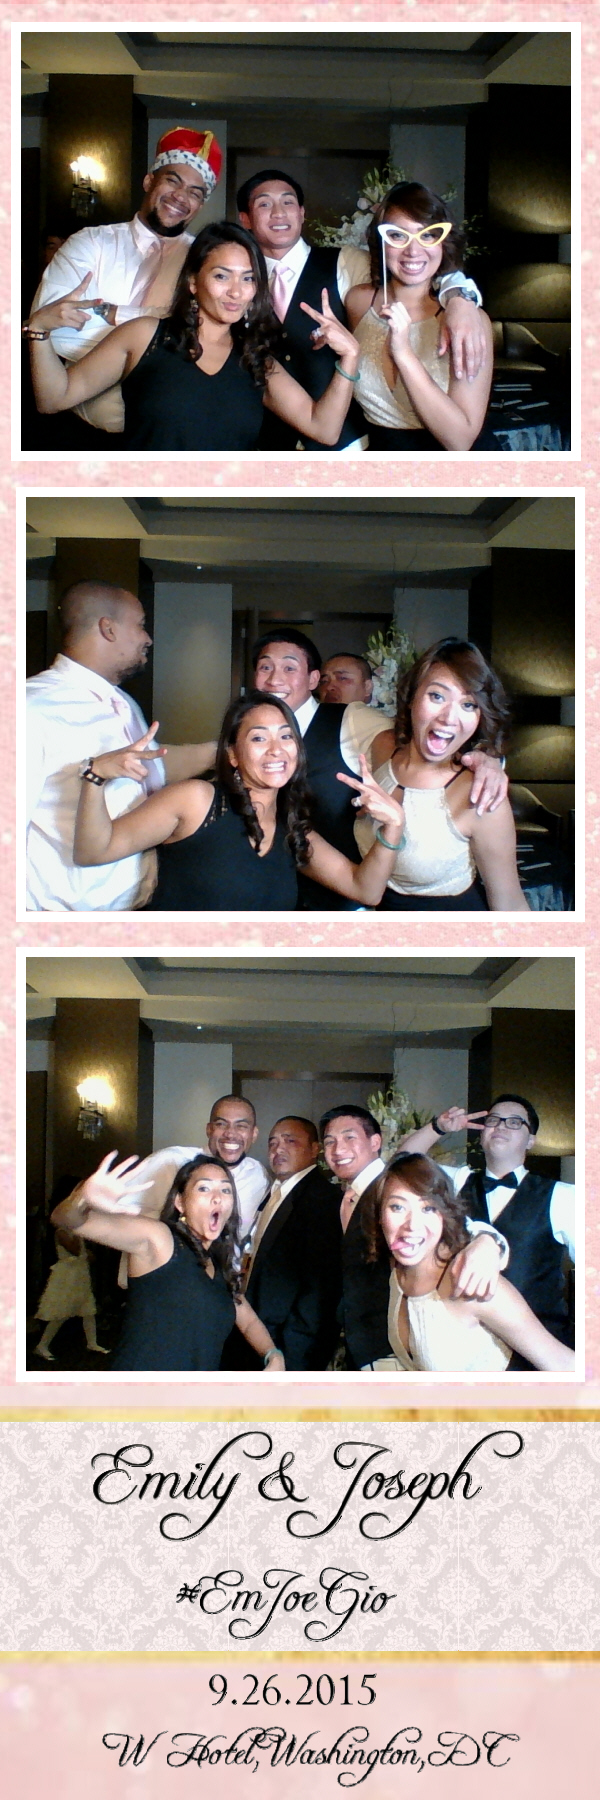 Guest House Events Photo Booth E&J (32).jpg